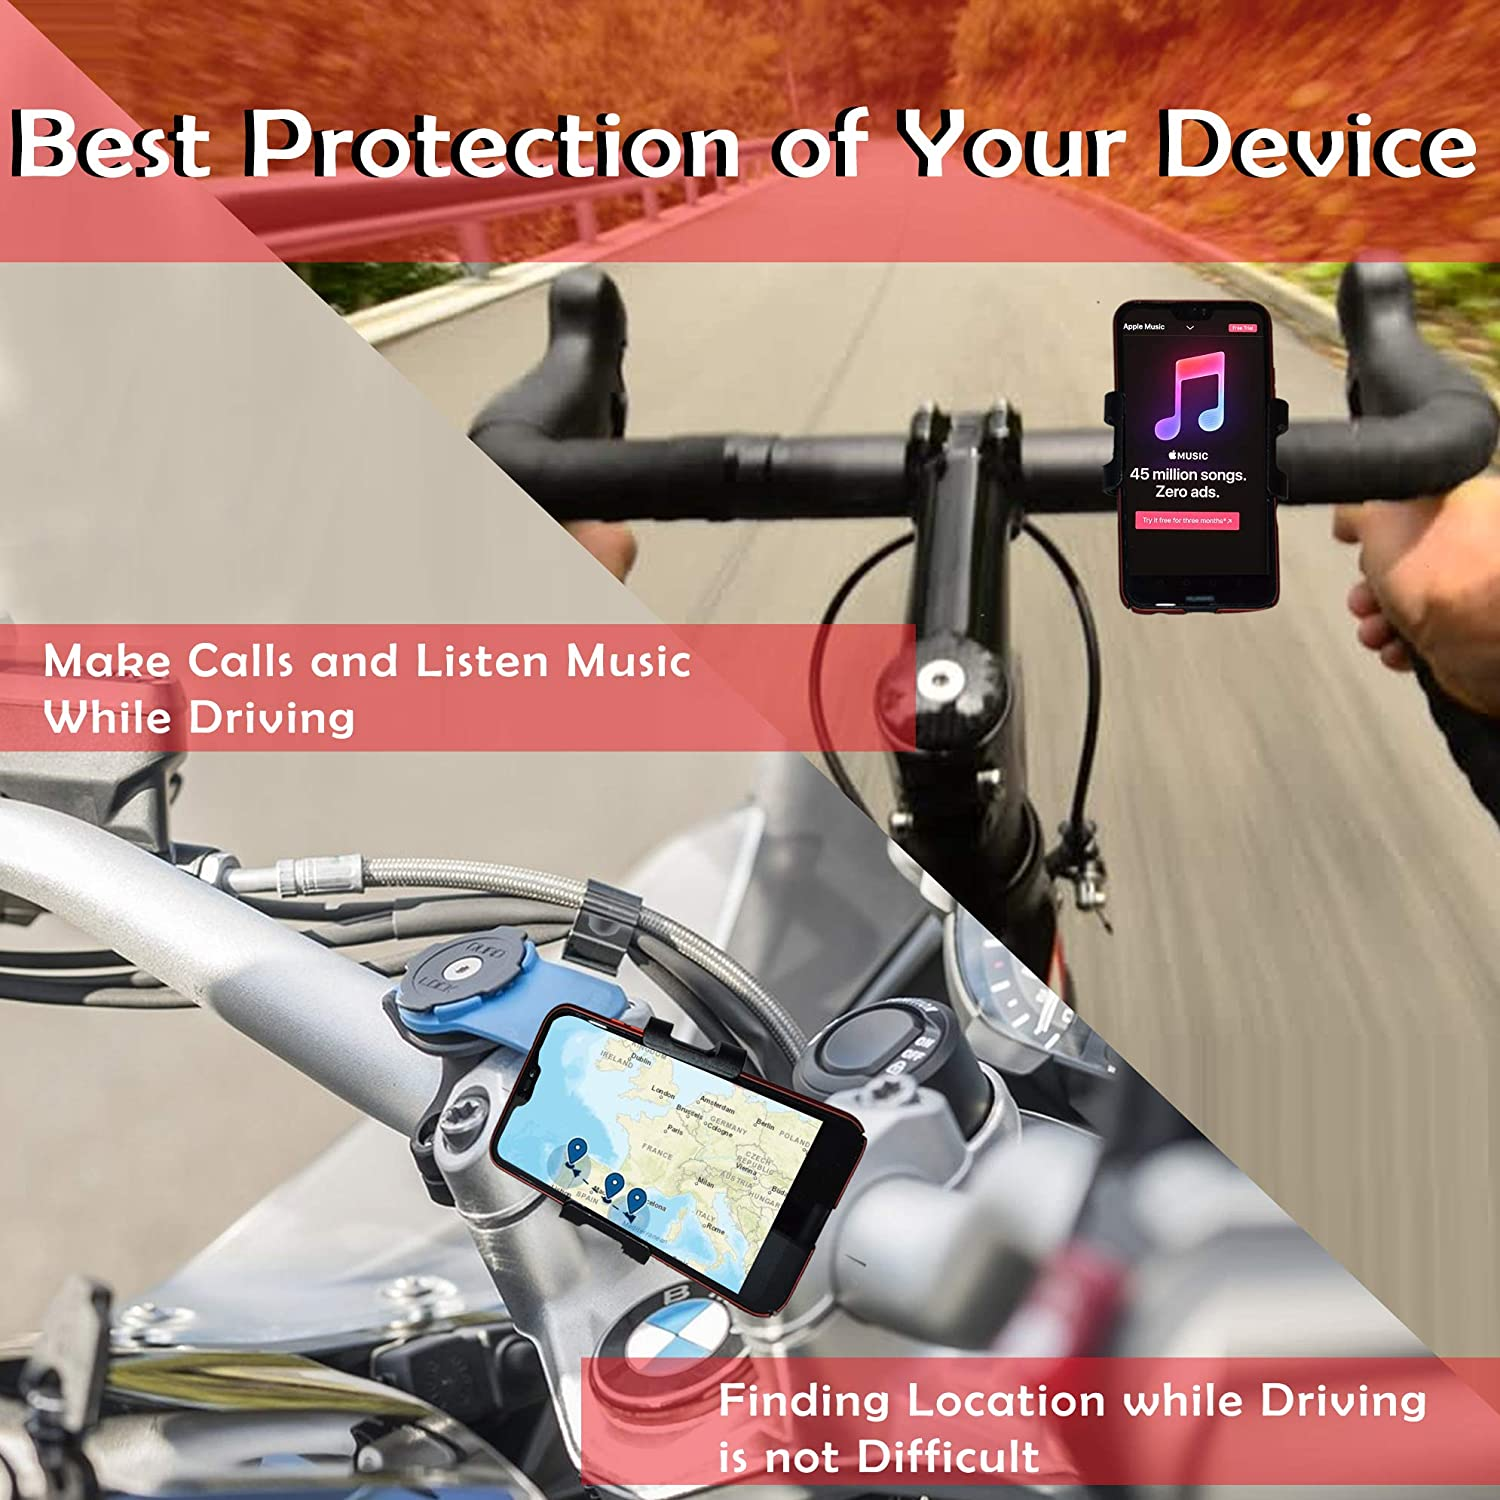 XR XS LG VEGAMONT Bike Phone Mount Any Phone Up to 6.5 to 3.5 Wide-360 Rotation Adjustable for iPhone X S9 S8 S7 Samsung Galaxy 8//8Plus 6S//6S Plus 7//7Plus